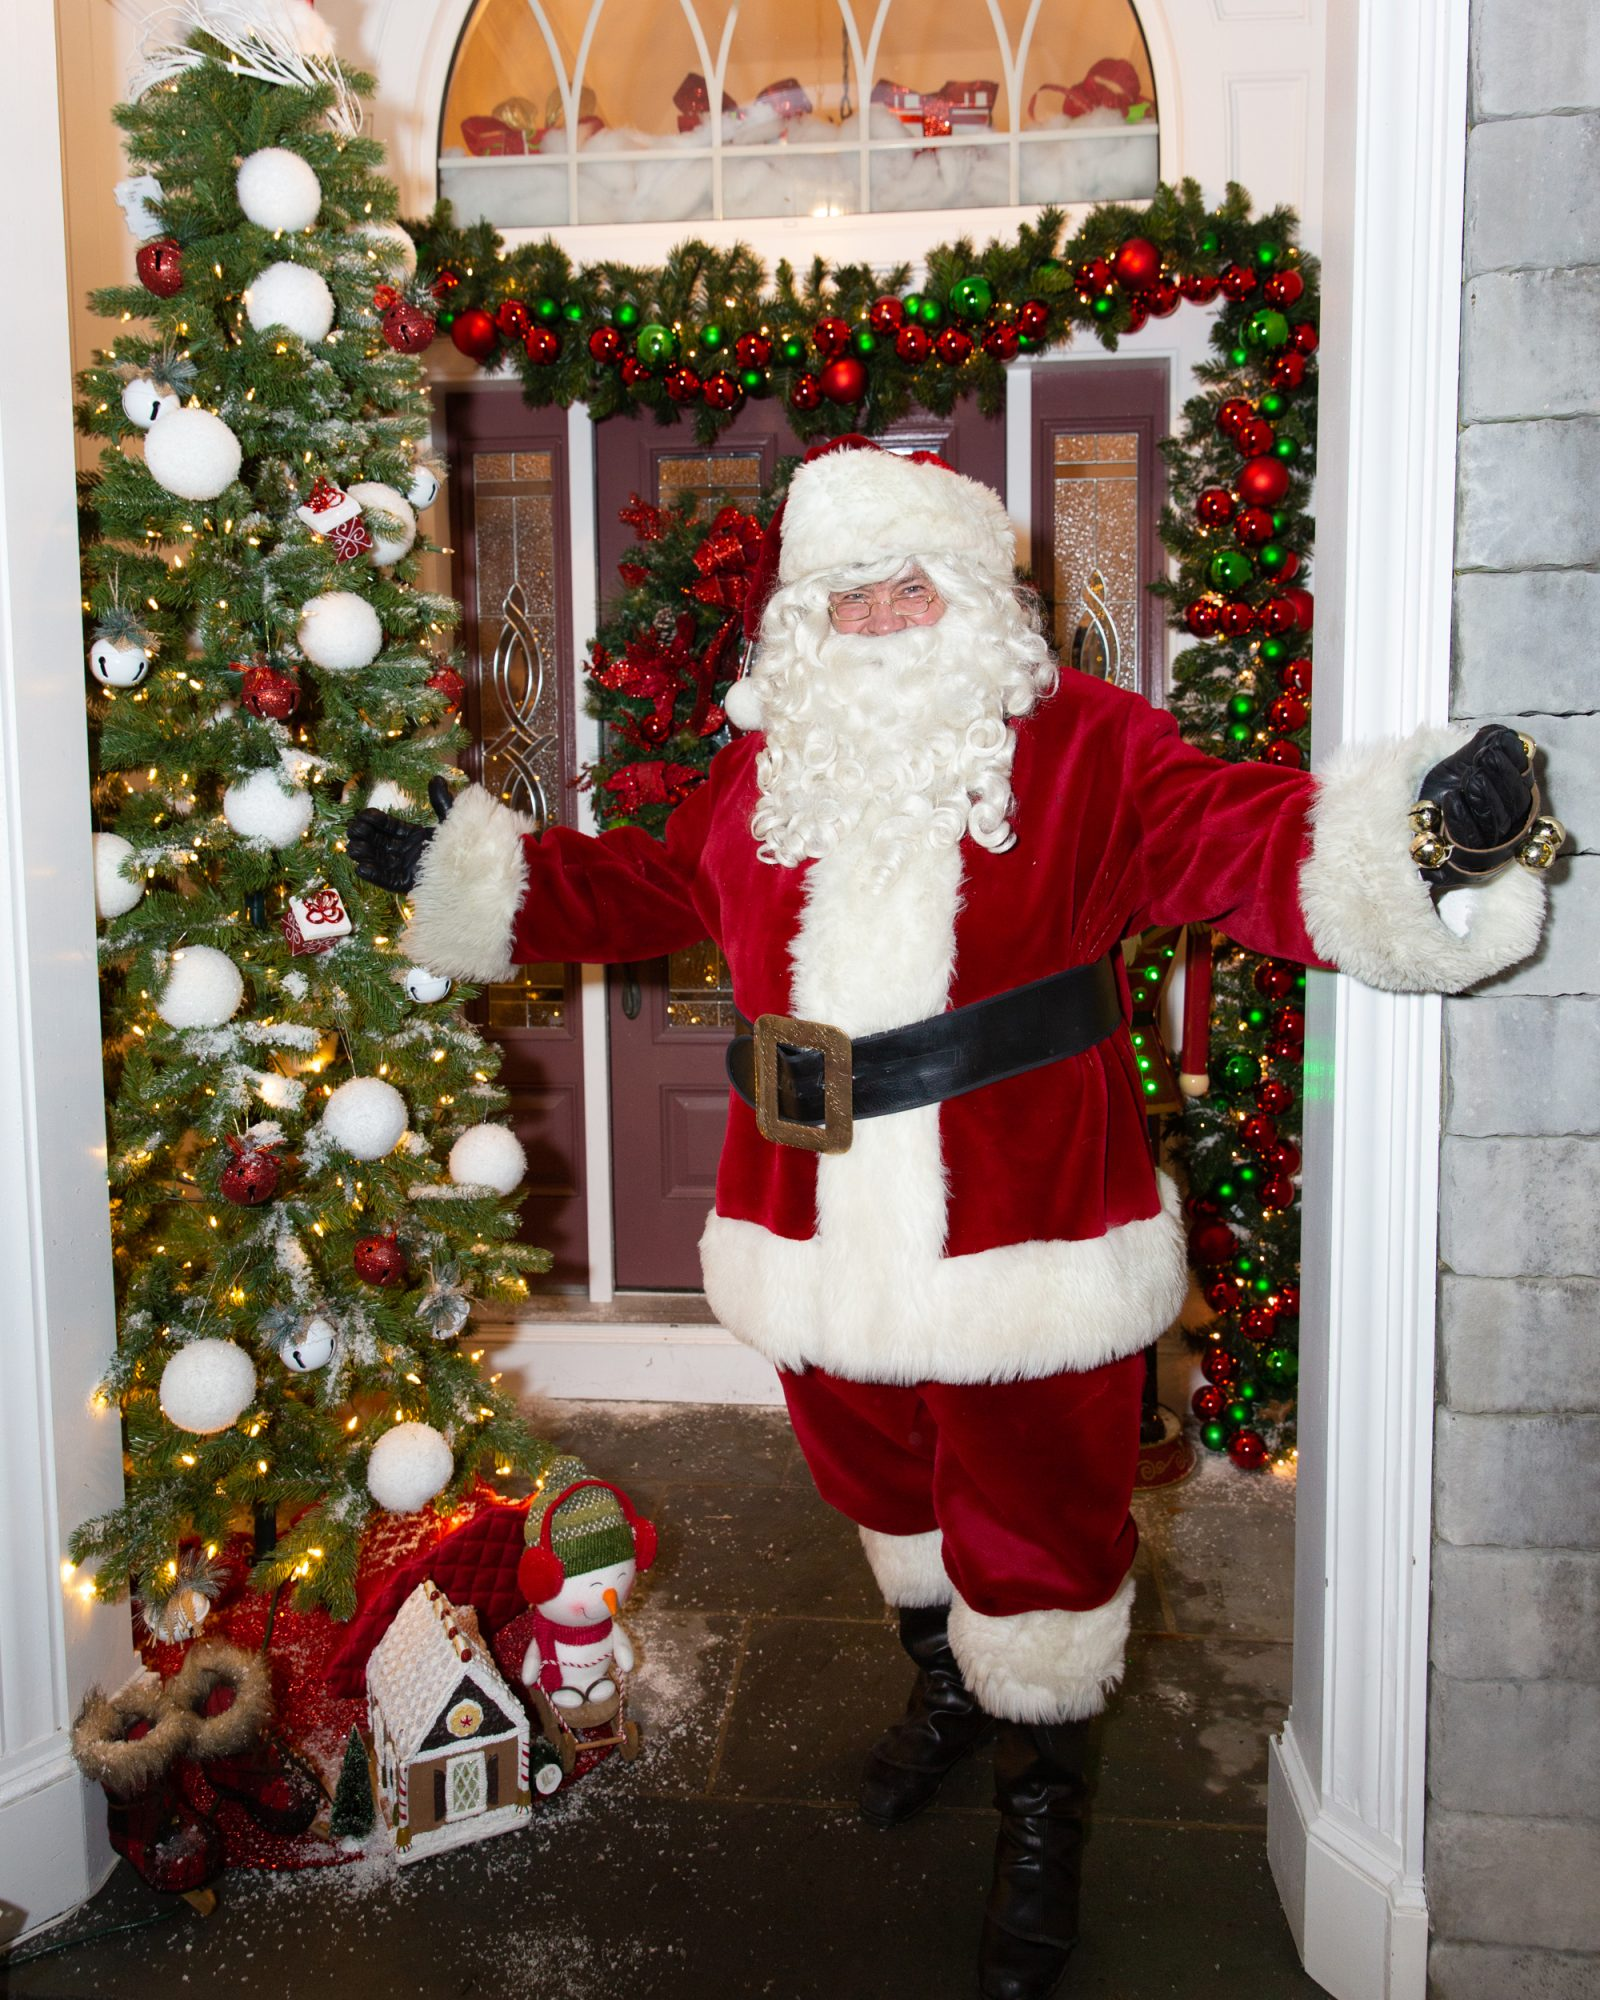 santa claus posing in front of door with holiday decor